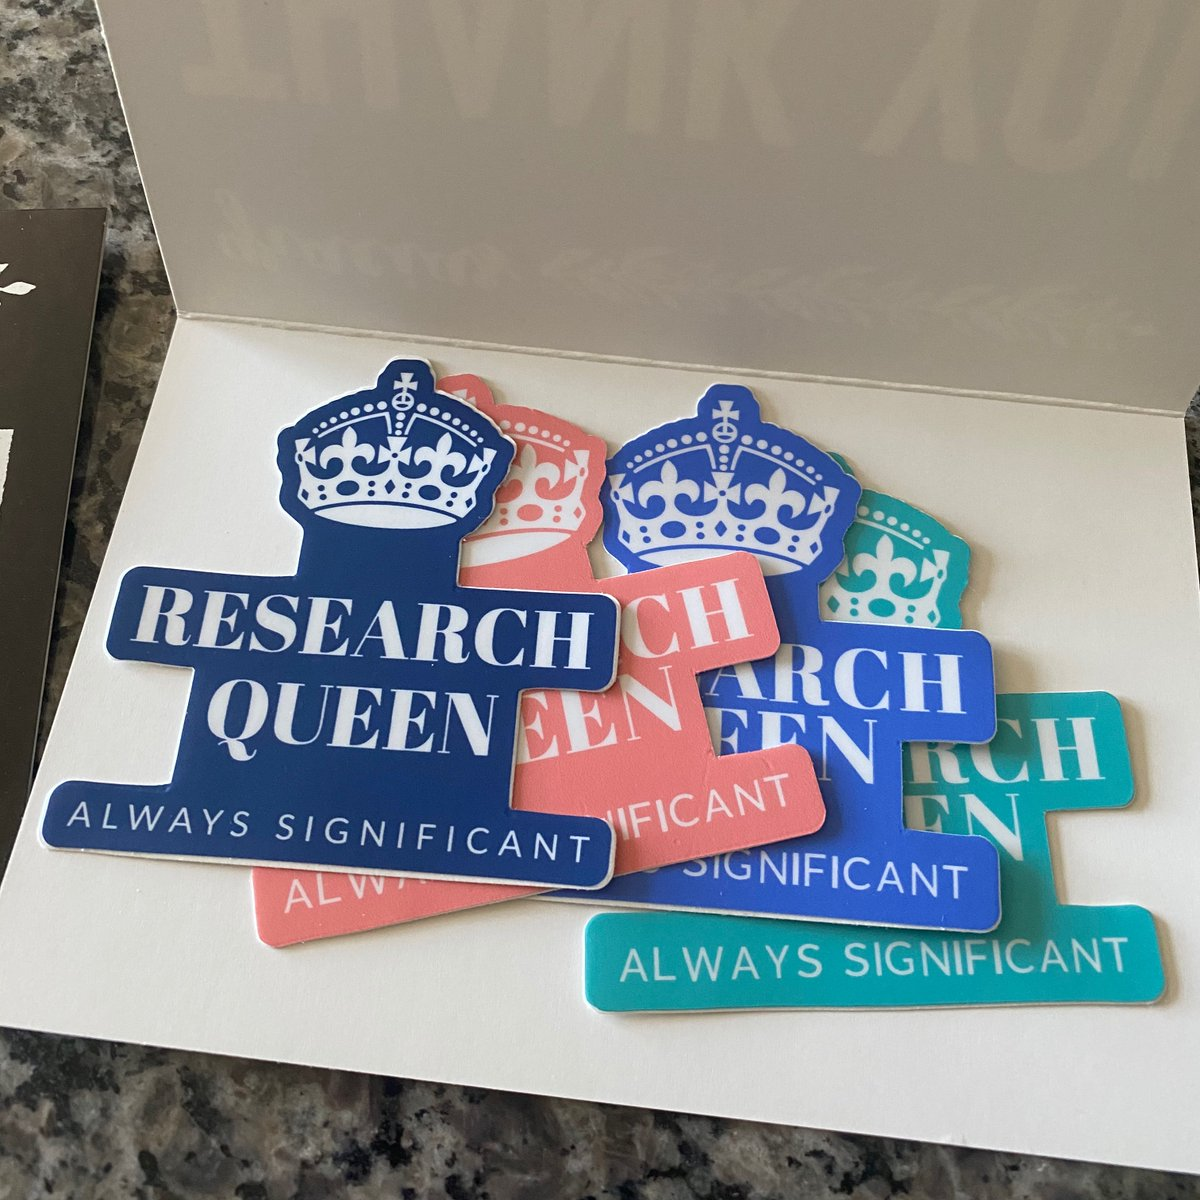 FREE domestic shipping when you buy 2 items! Use code: FREESHIPPING. New stickers in stock 🎉😍https://t.co/SnQkALNmRX. #academic #academia #academicwriting #research #researcher #phd #phdlife #phdstudent #professor #collegeprofessor #thesis #dissertation #writer #writing https://t.co/dWywaMFpbH